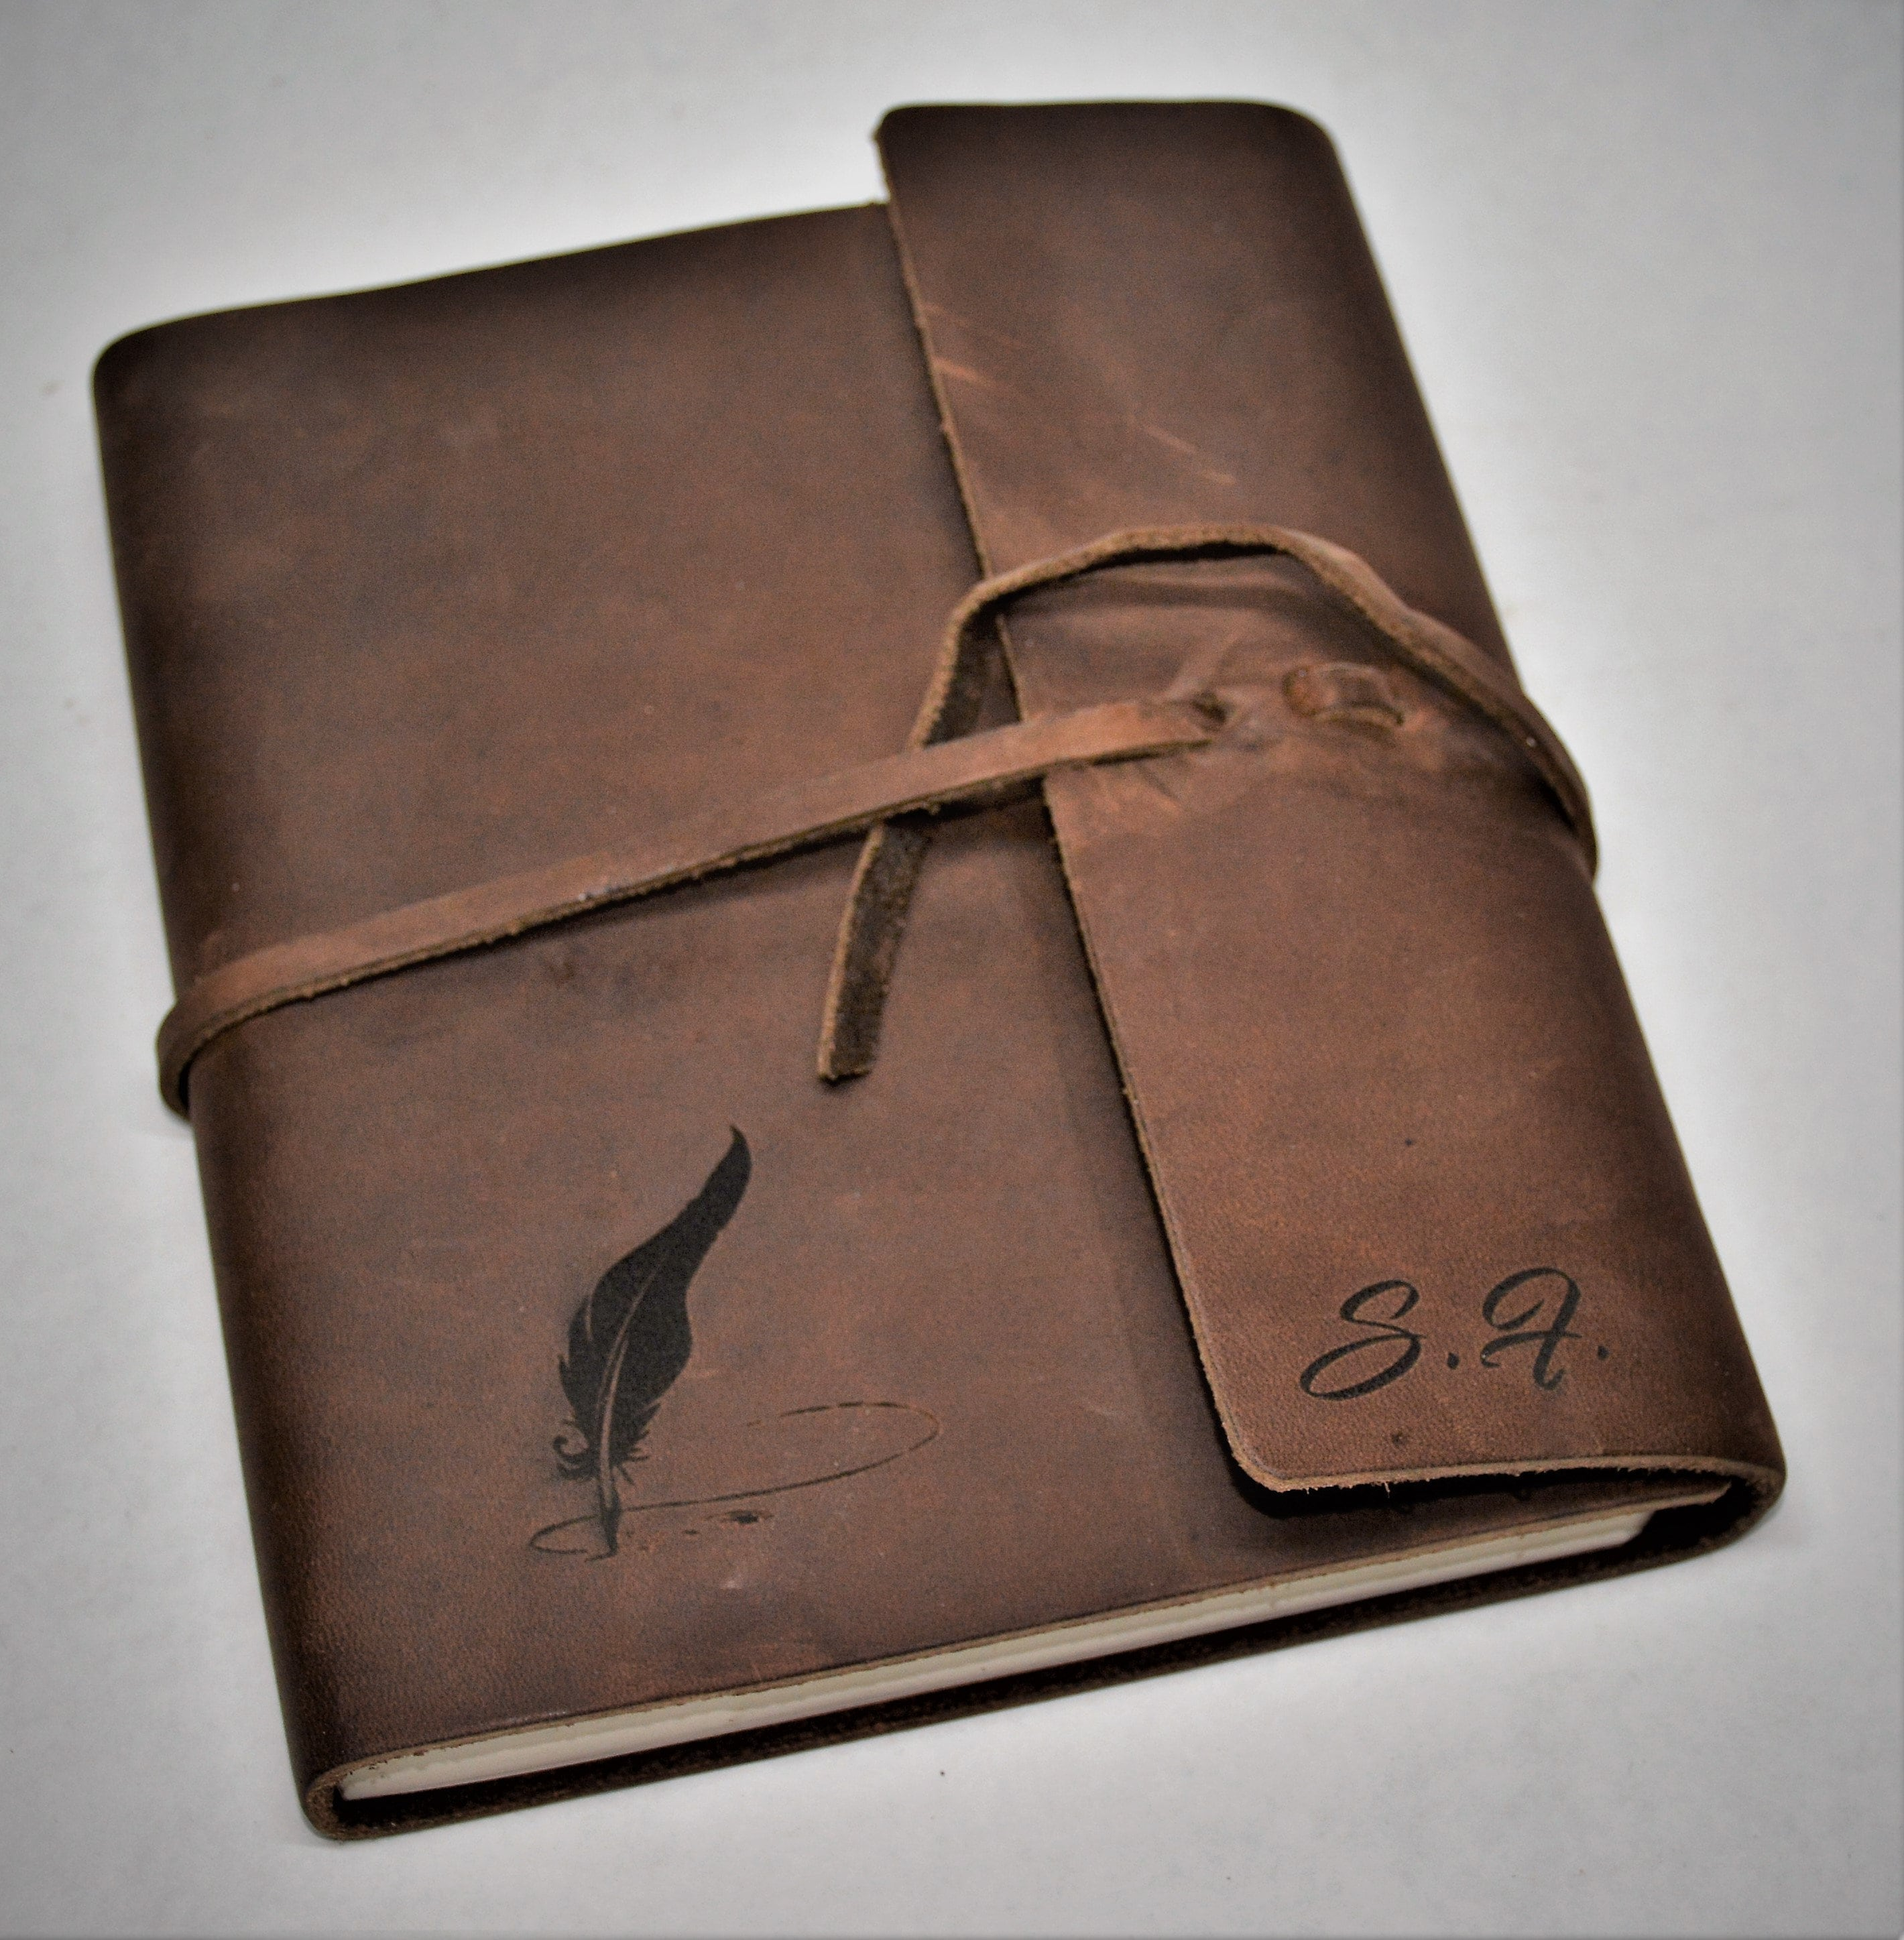 Premium Leather Journal Personalized Custom Engraved image 2